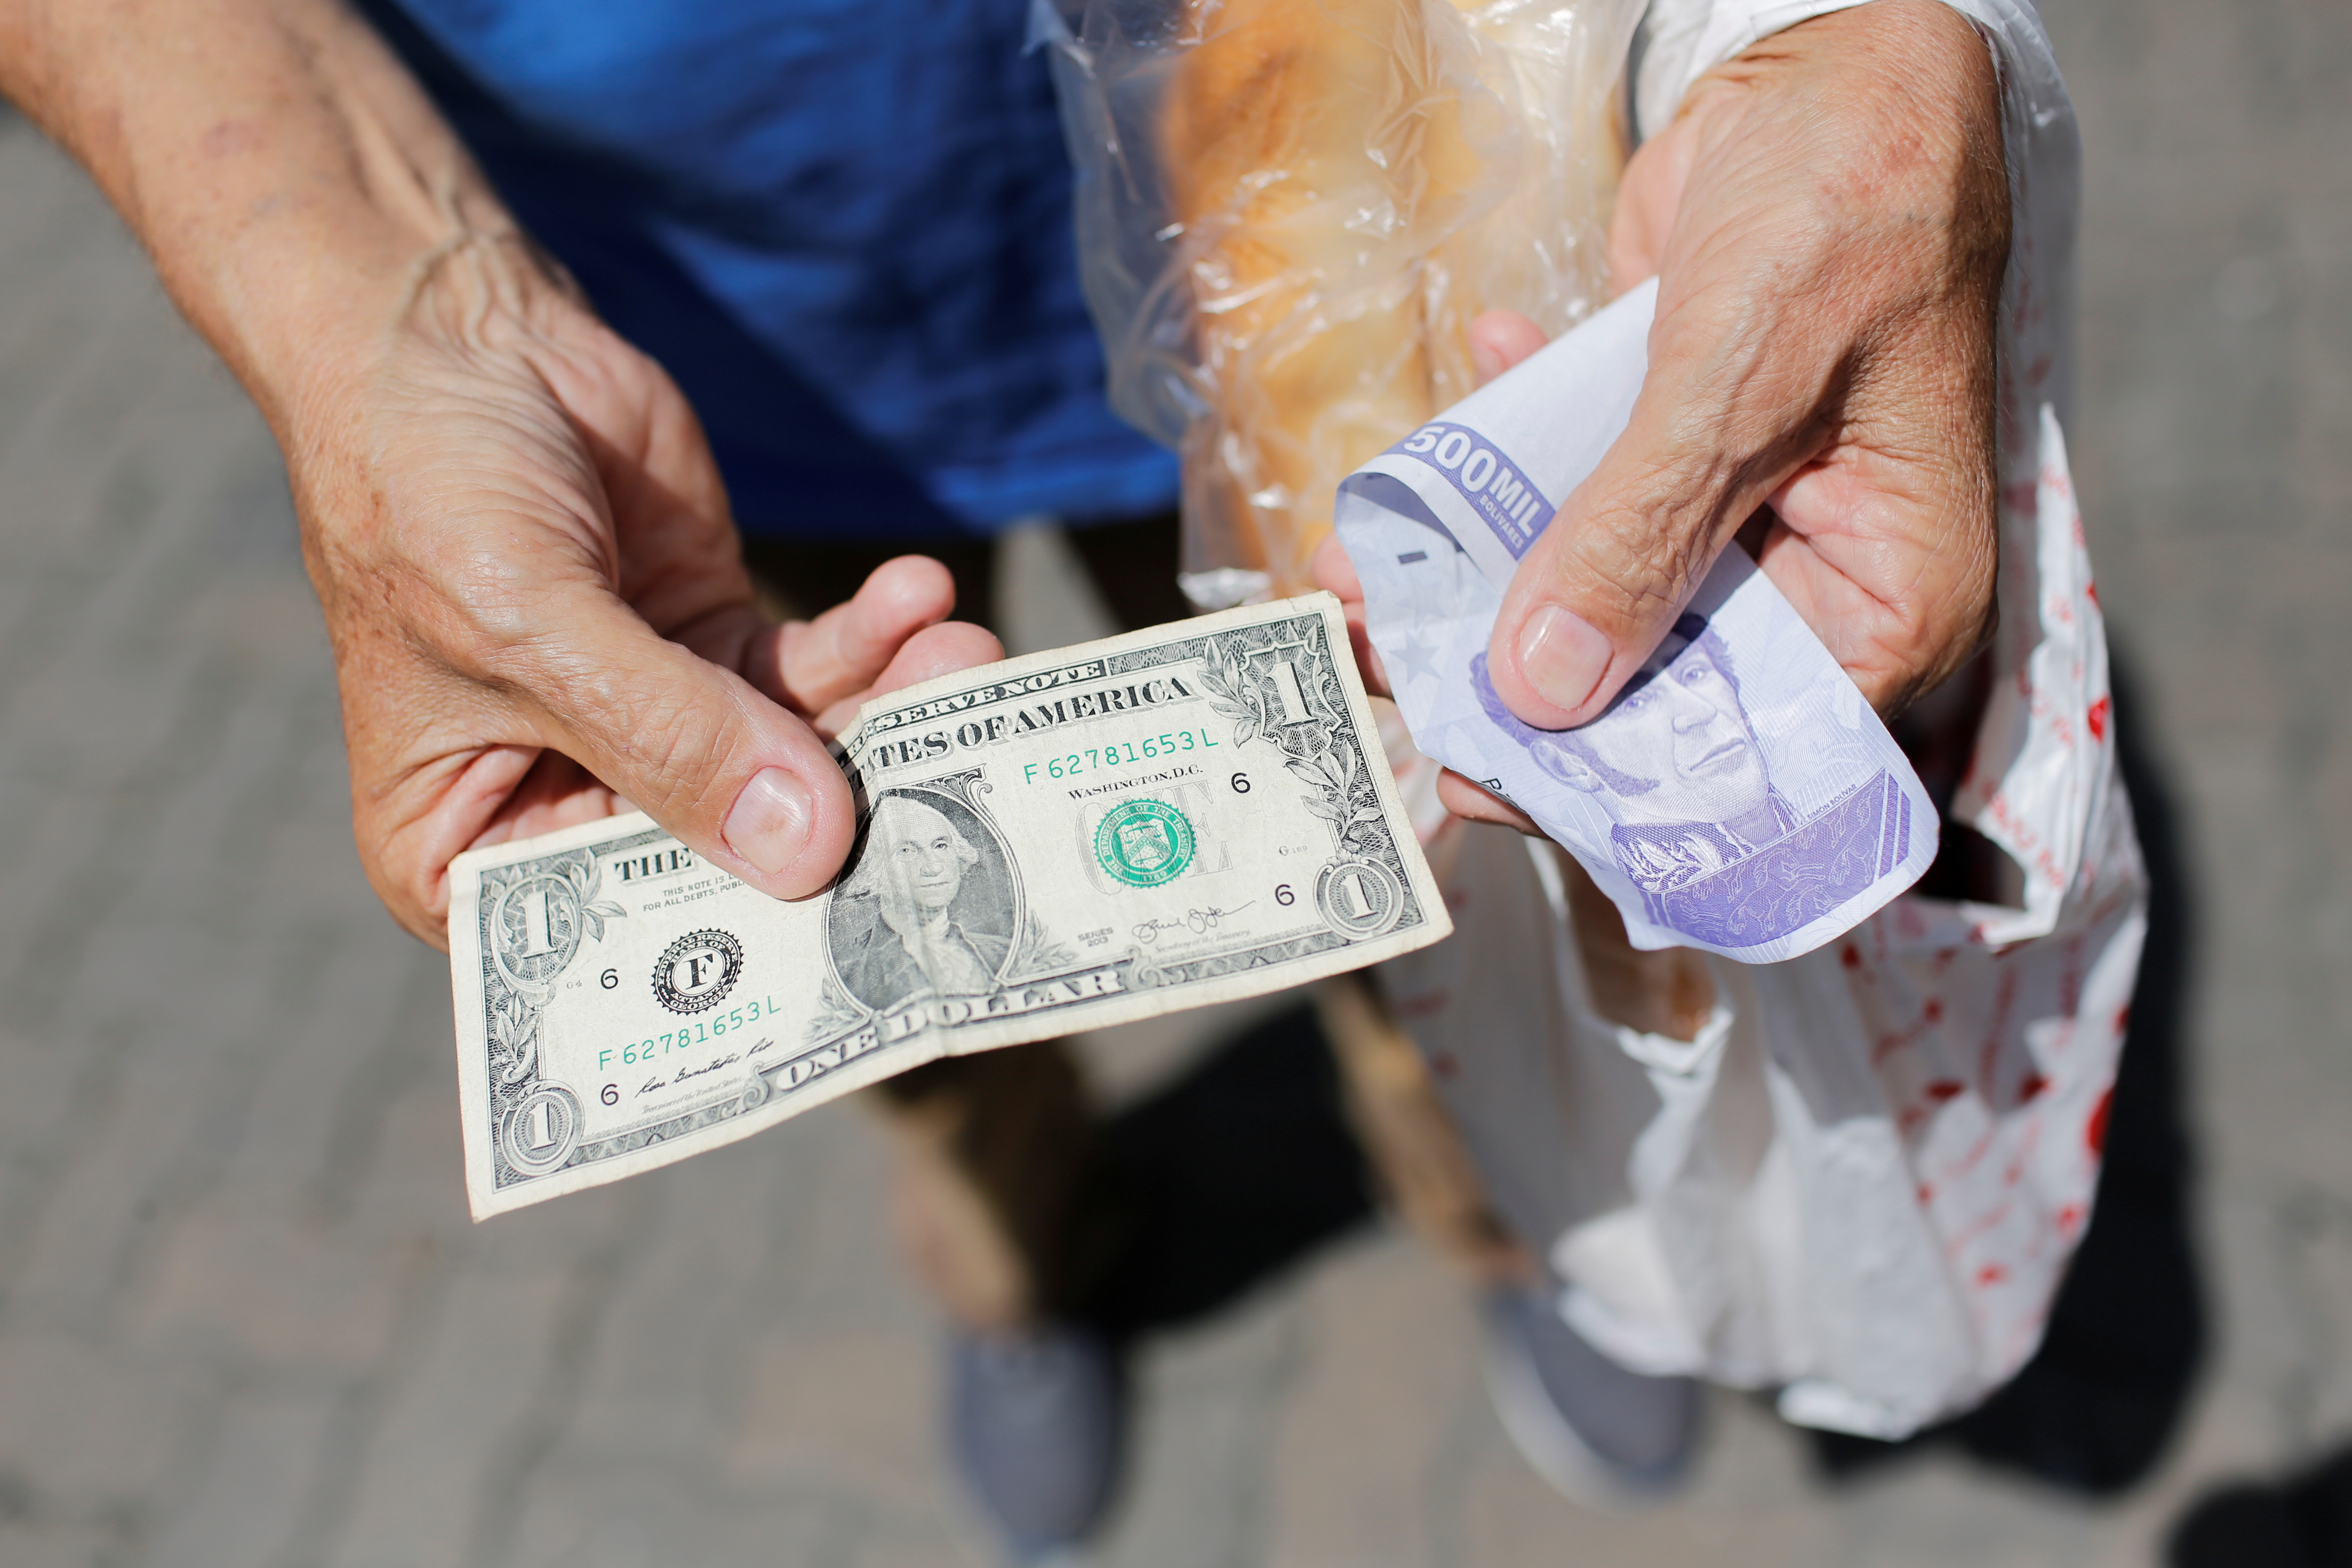 A street vendor holds a one dollar banknote beside an old Bolivar banknote in Caracas, Venezuela, October 1, 2021. REUTERS/Manaure Quintero